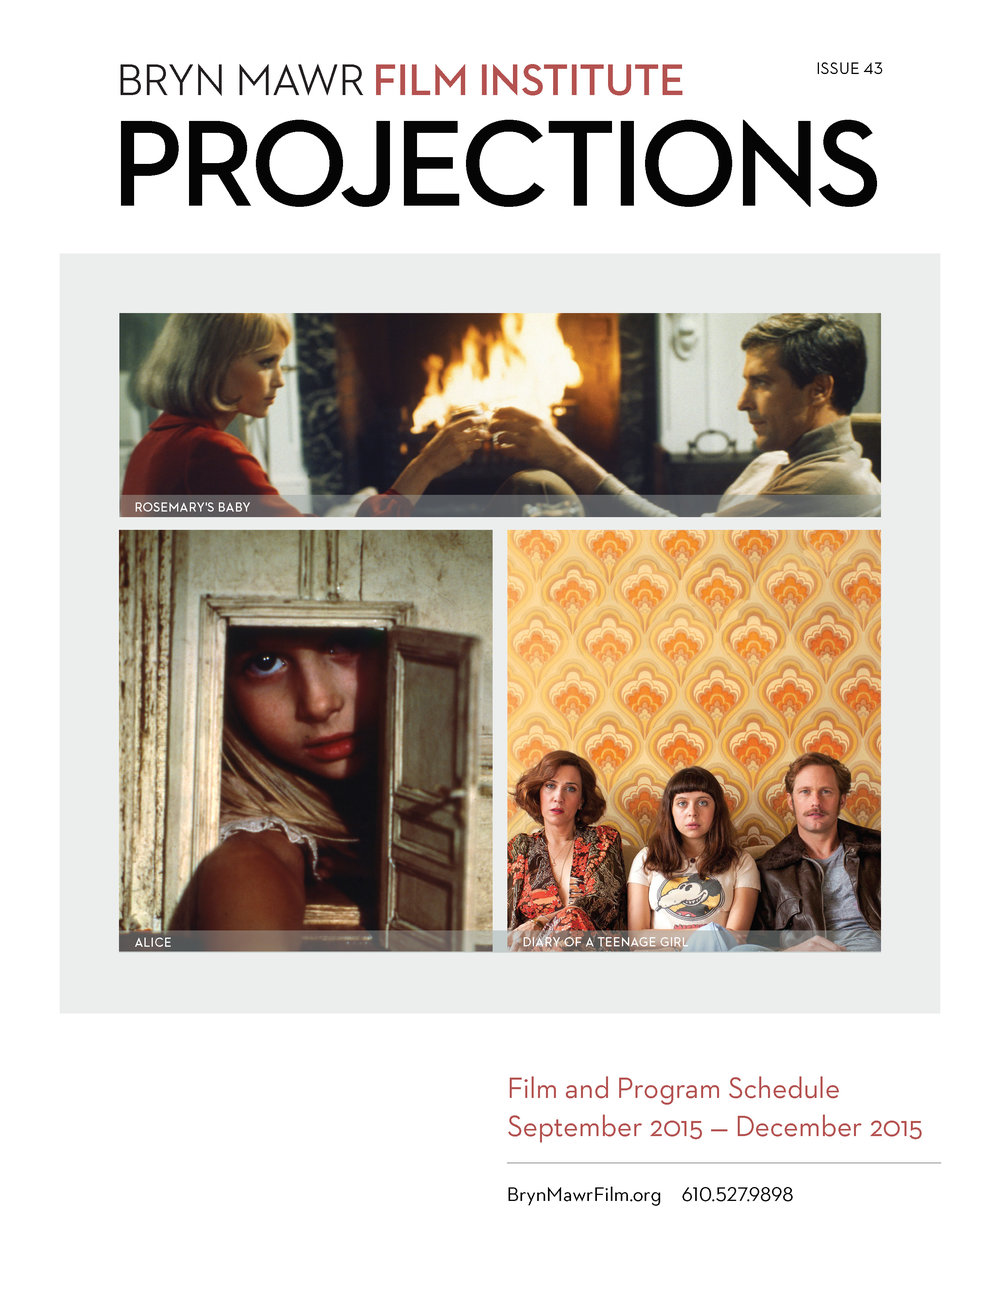 BMFIProjections43_Cover.jpg